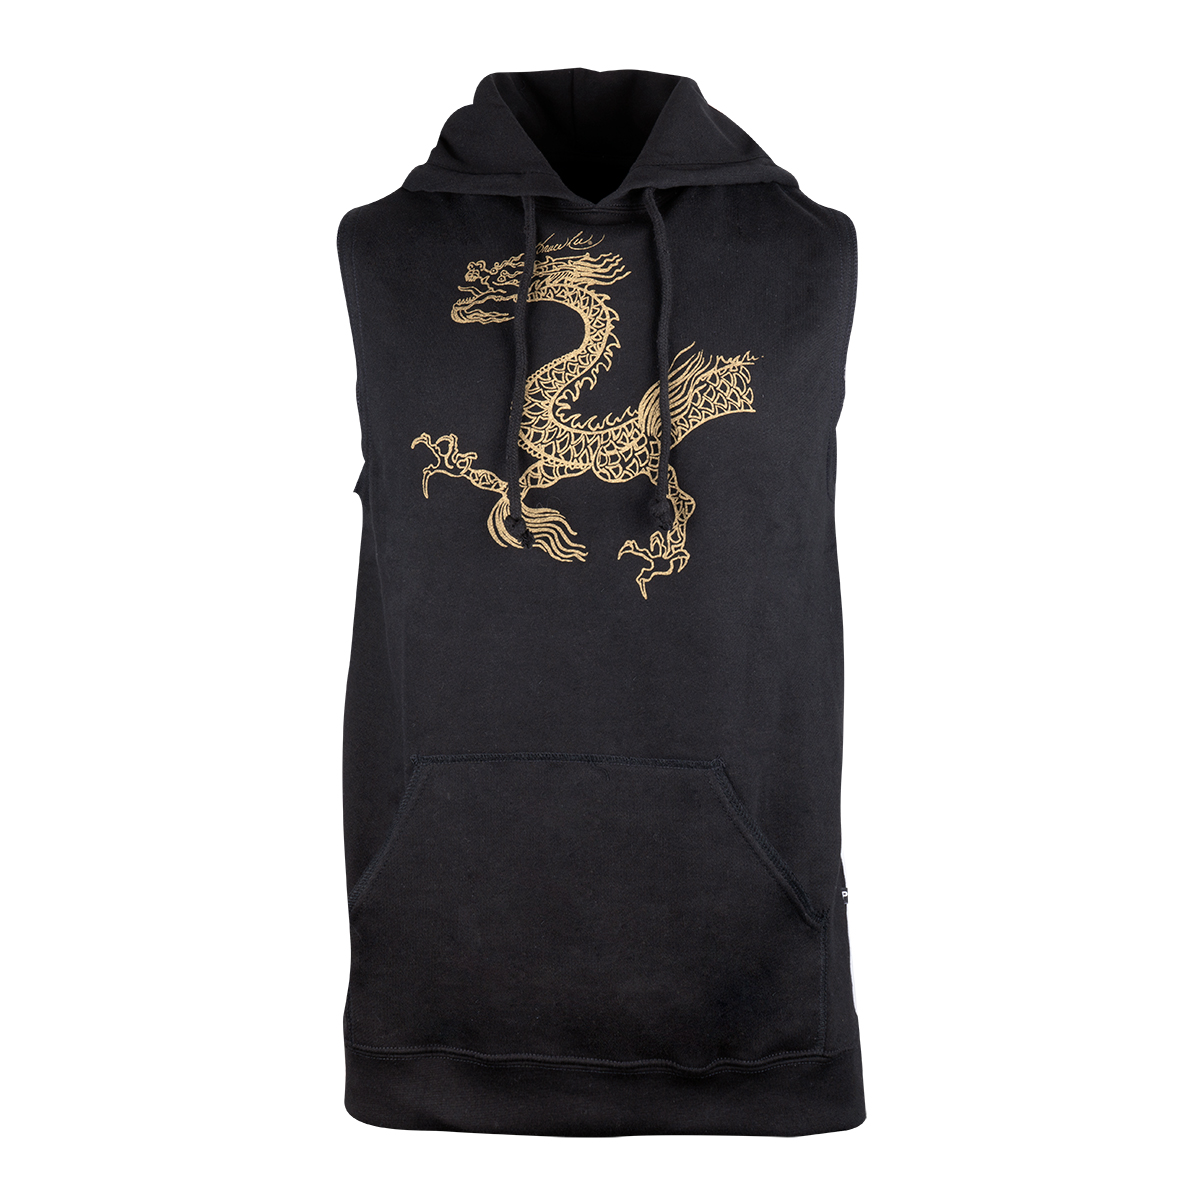 Lee Little Dragon Sleeveless Trainer Hoodie